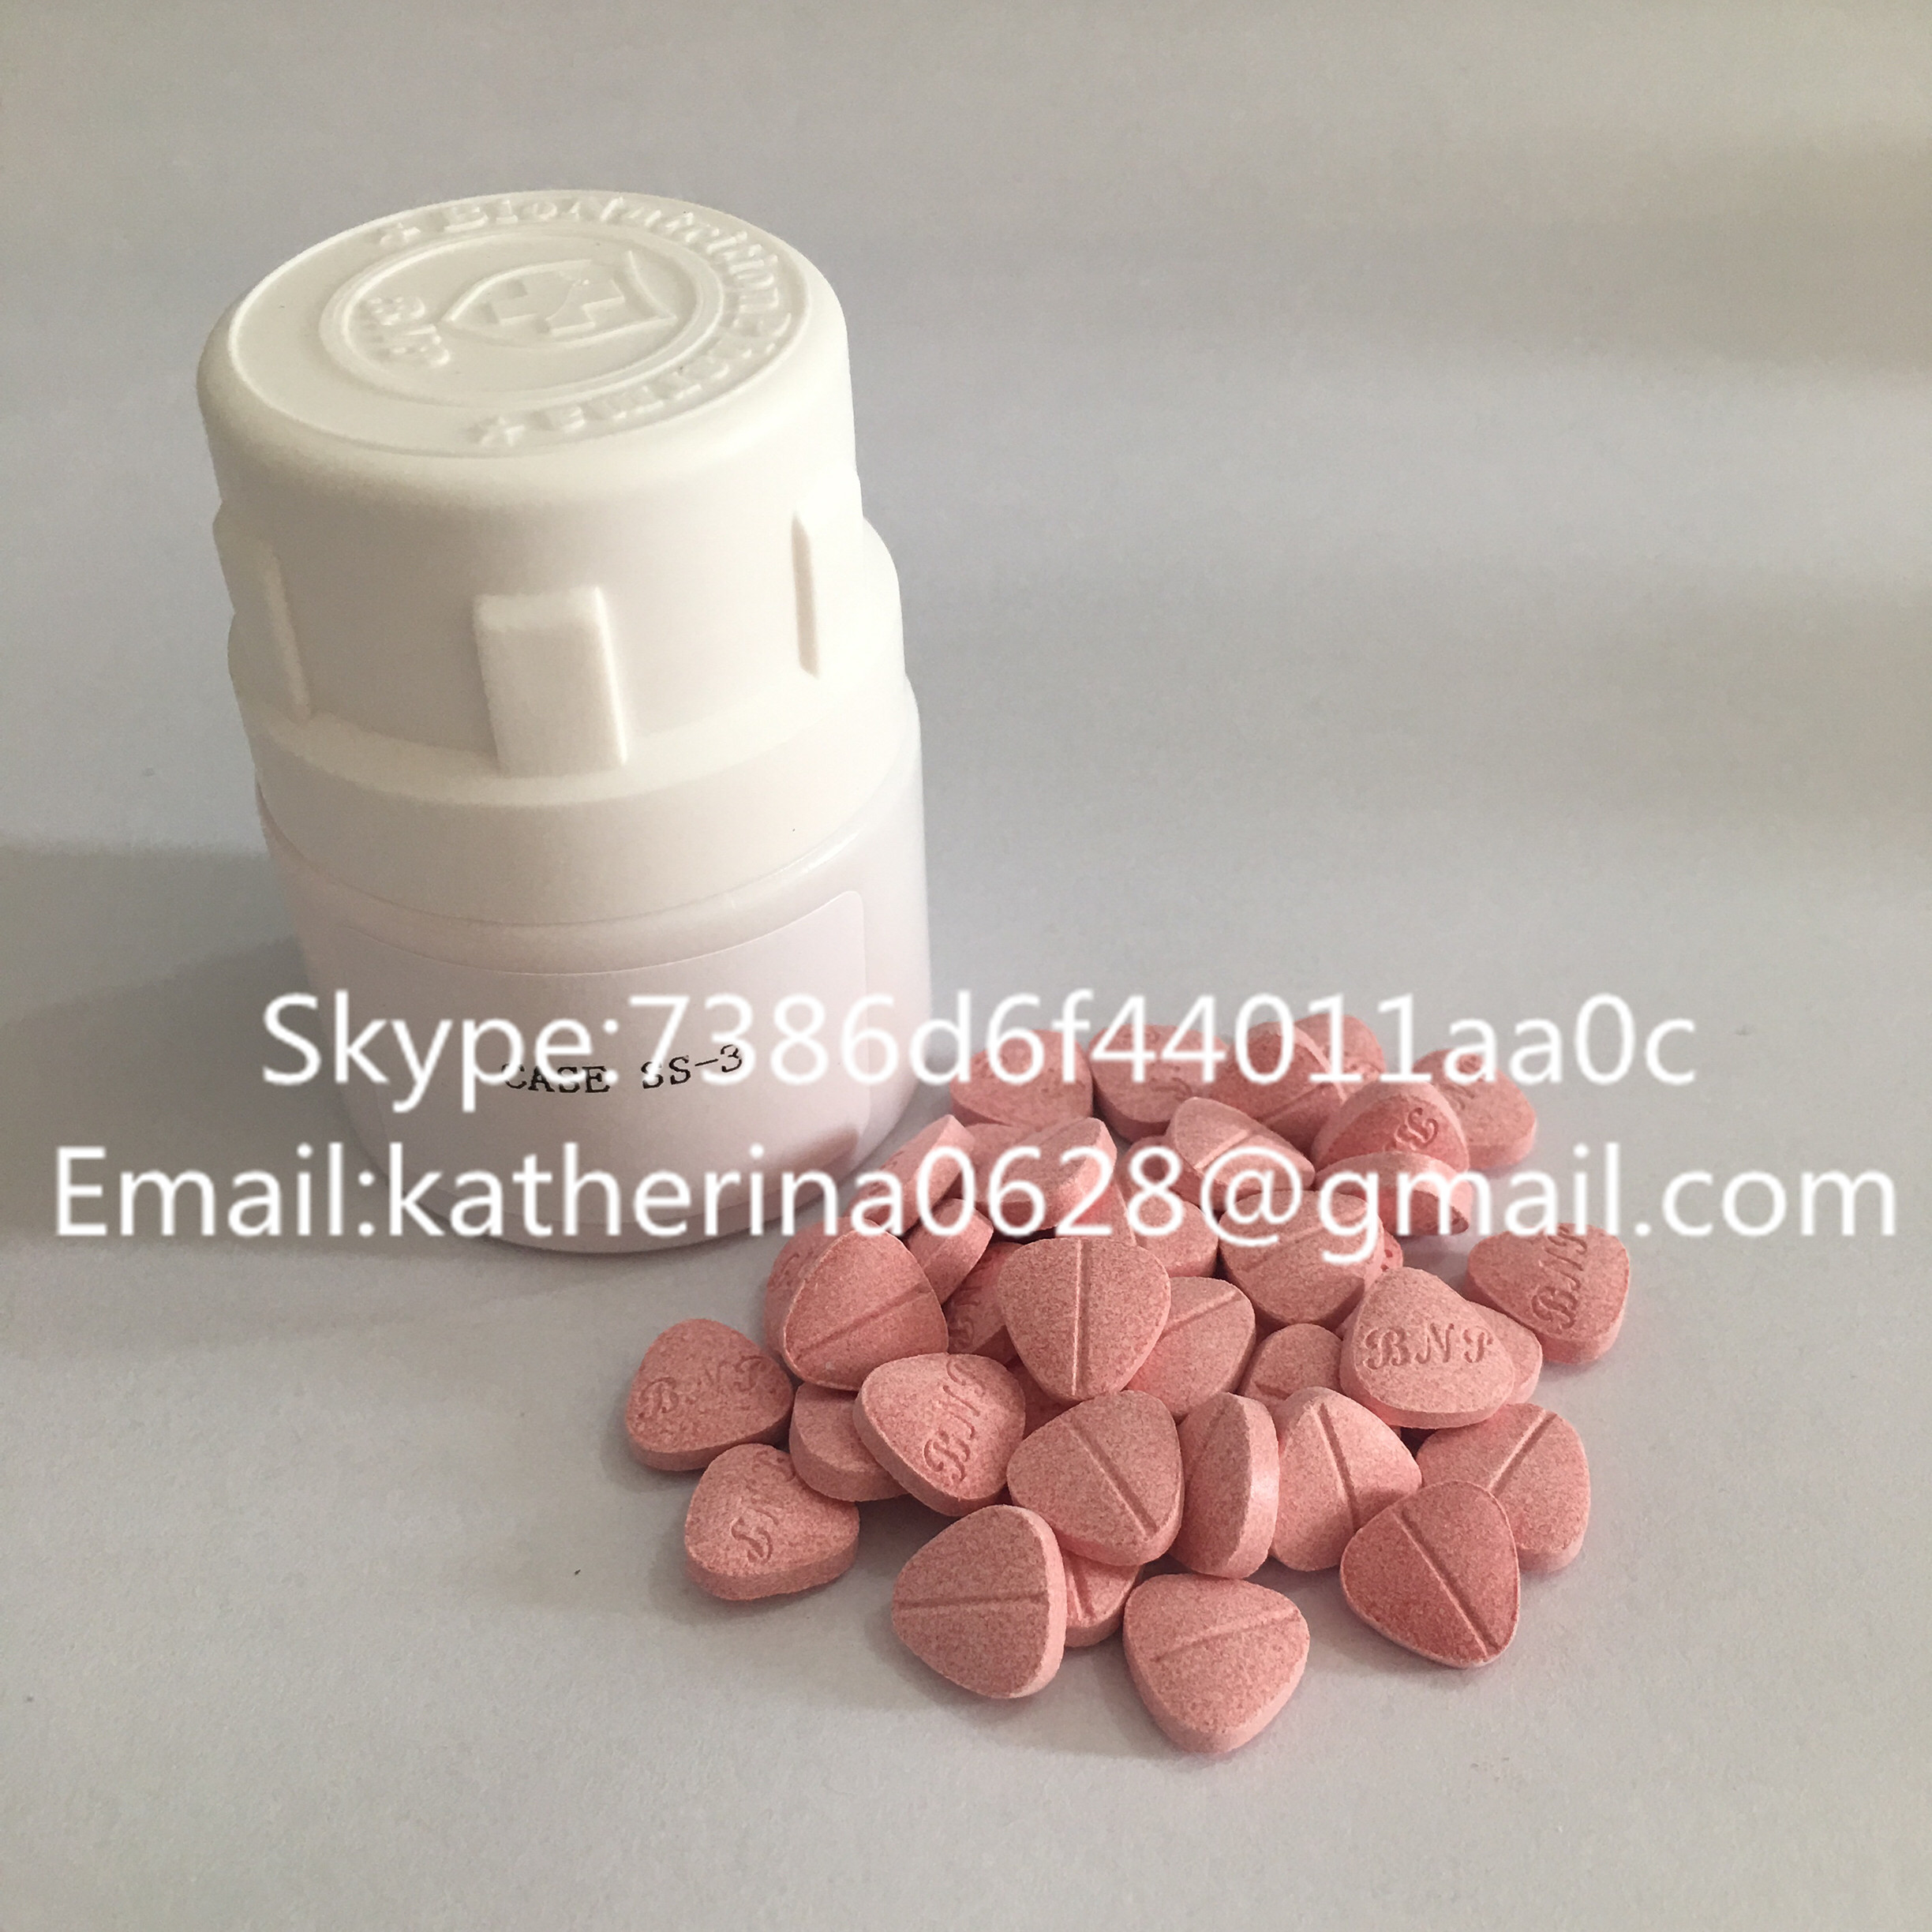 High Quality Sarm Products SR9009 Steroid Tablets From Hormone Manufacturer